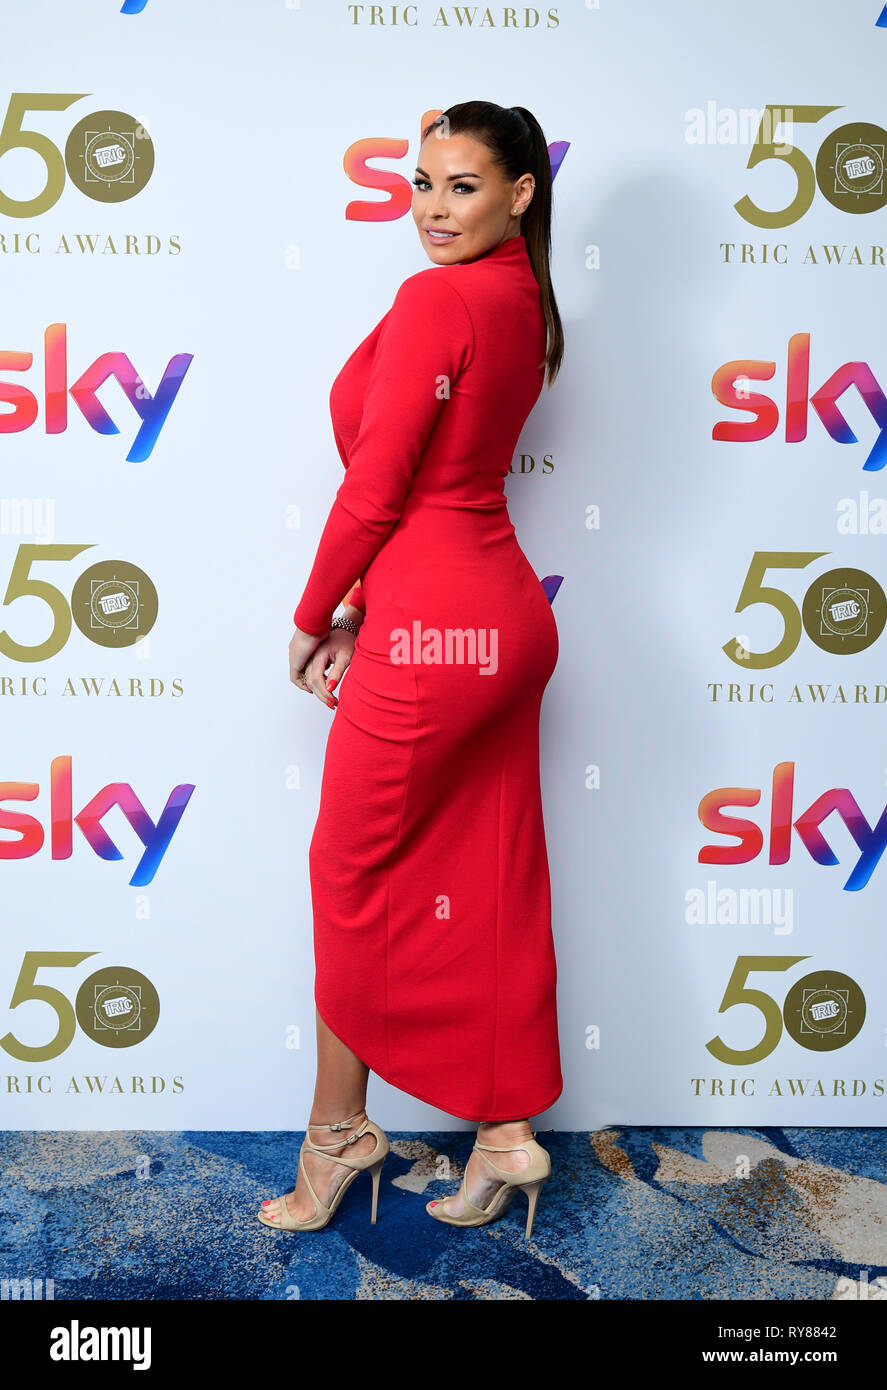 Jess Wright attending the TRIC Awards 2019 50th Birthday Celebration held at the Grosvenor House Hotel, London. - Stock Image